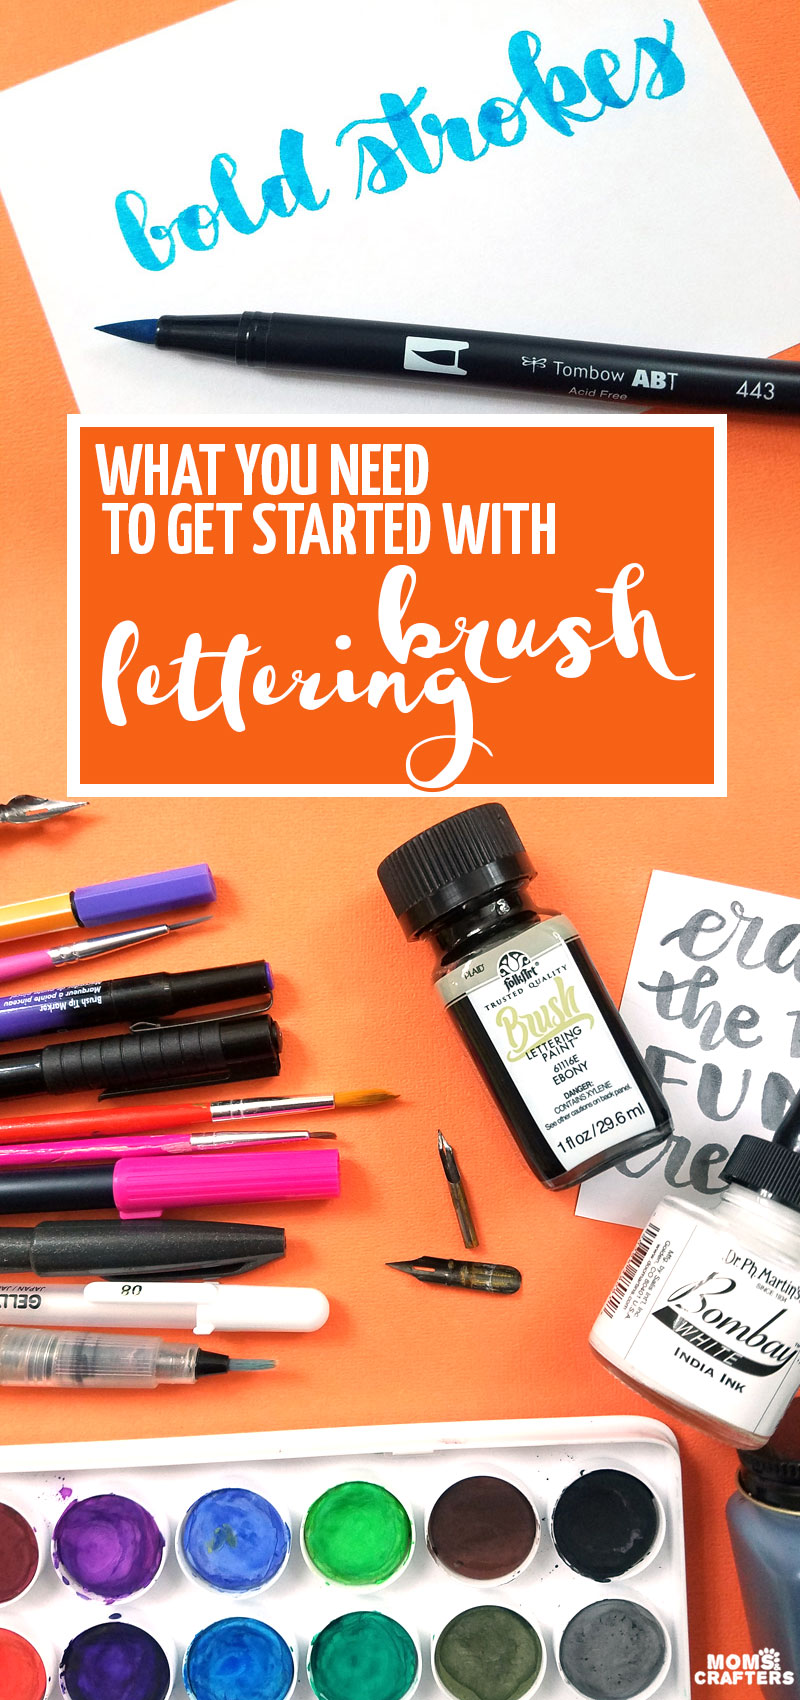 Click for some brush lettering 101 tips! These are teh best brush pens for lettering, as well as the best hand lettering brush for using ink or watercolors #lettering #brushlettering #calligraphy #brushcalligraphy #handlettering #watercolors